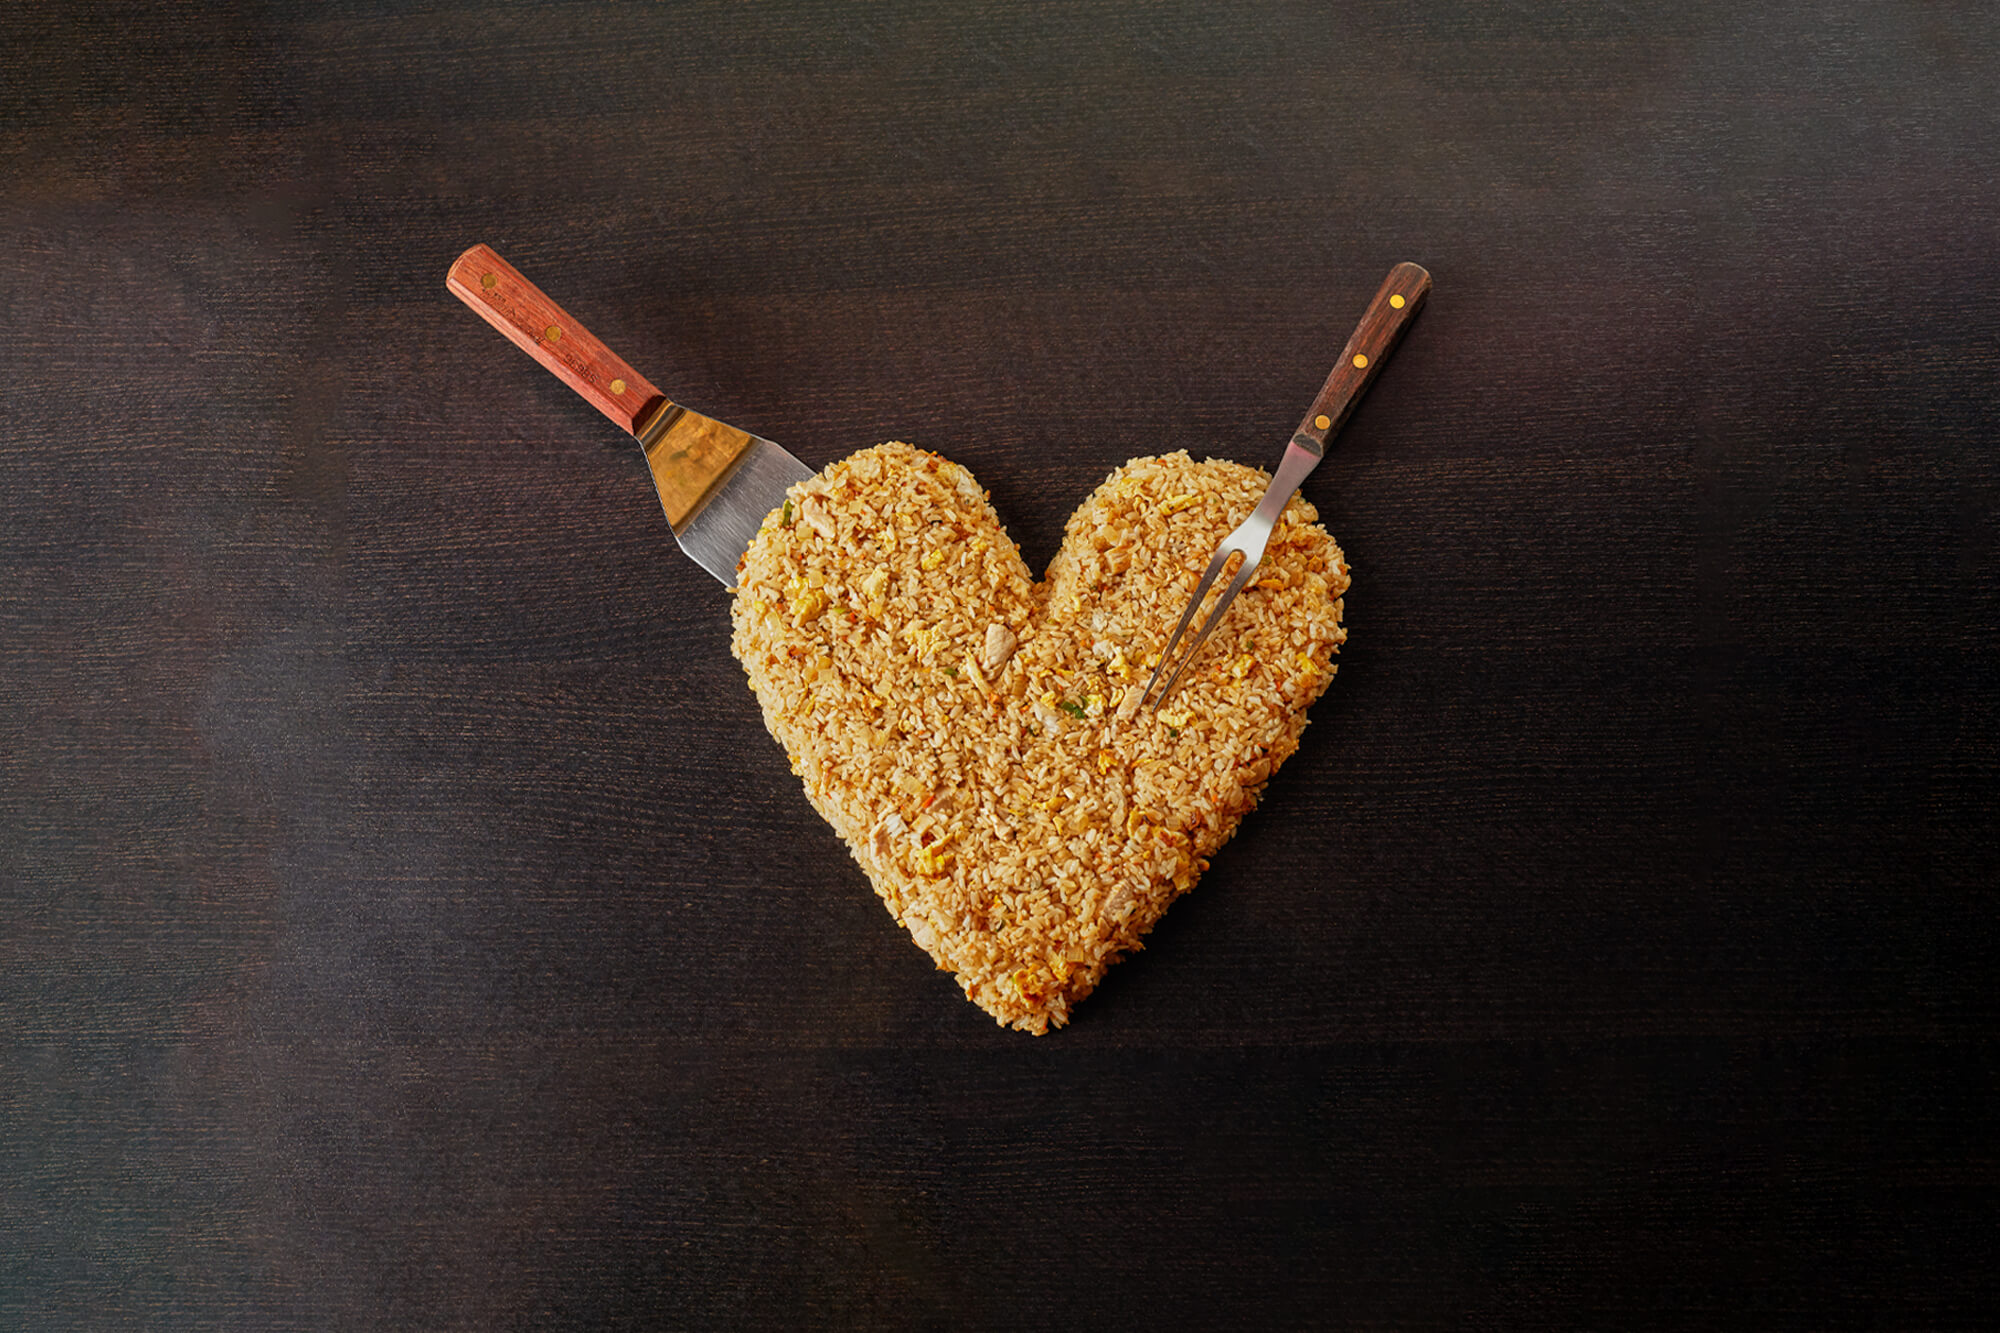 Samurai Heart Rice